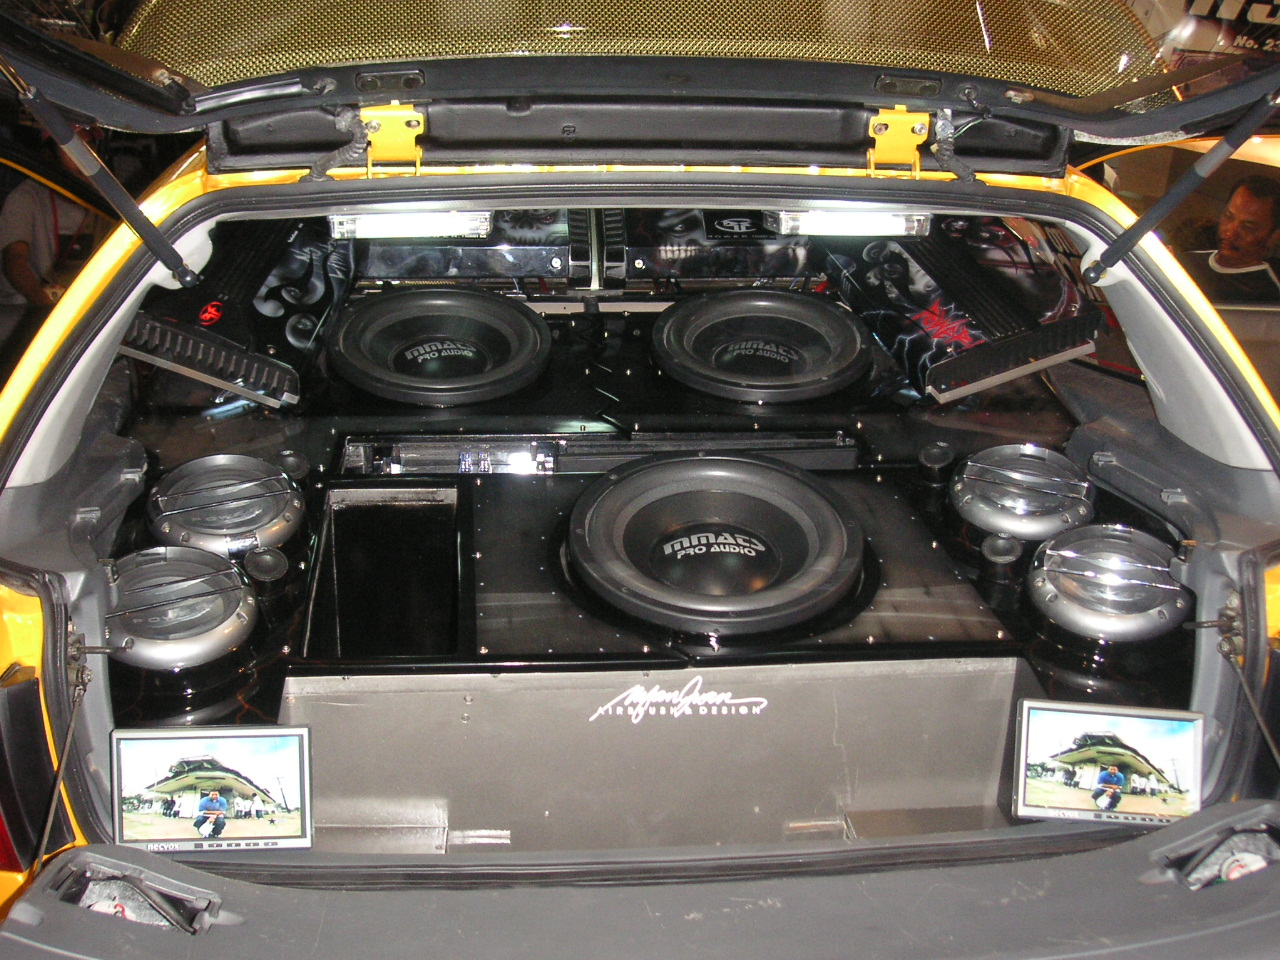 Multiple_subwoofers_in_a_car_hatchback